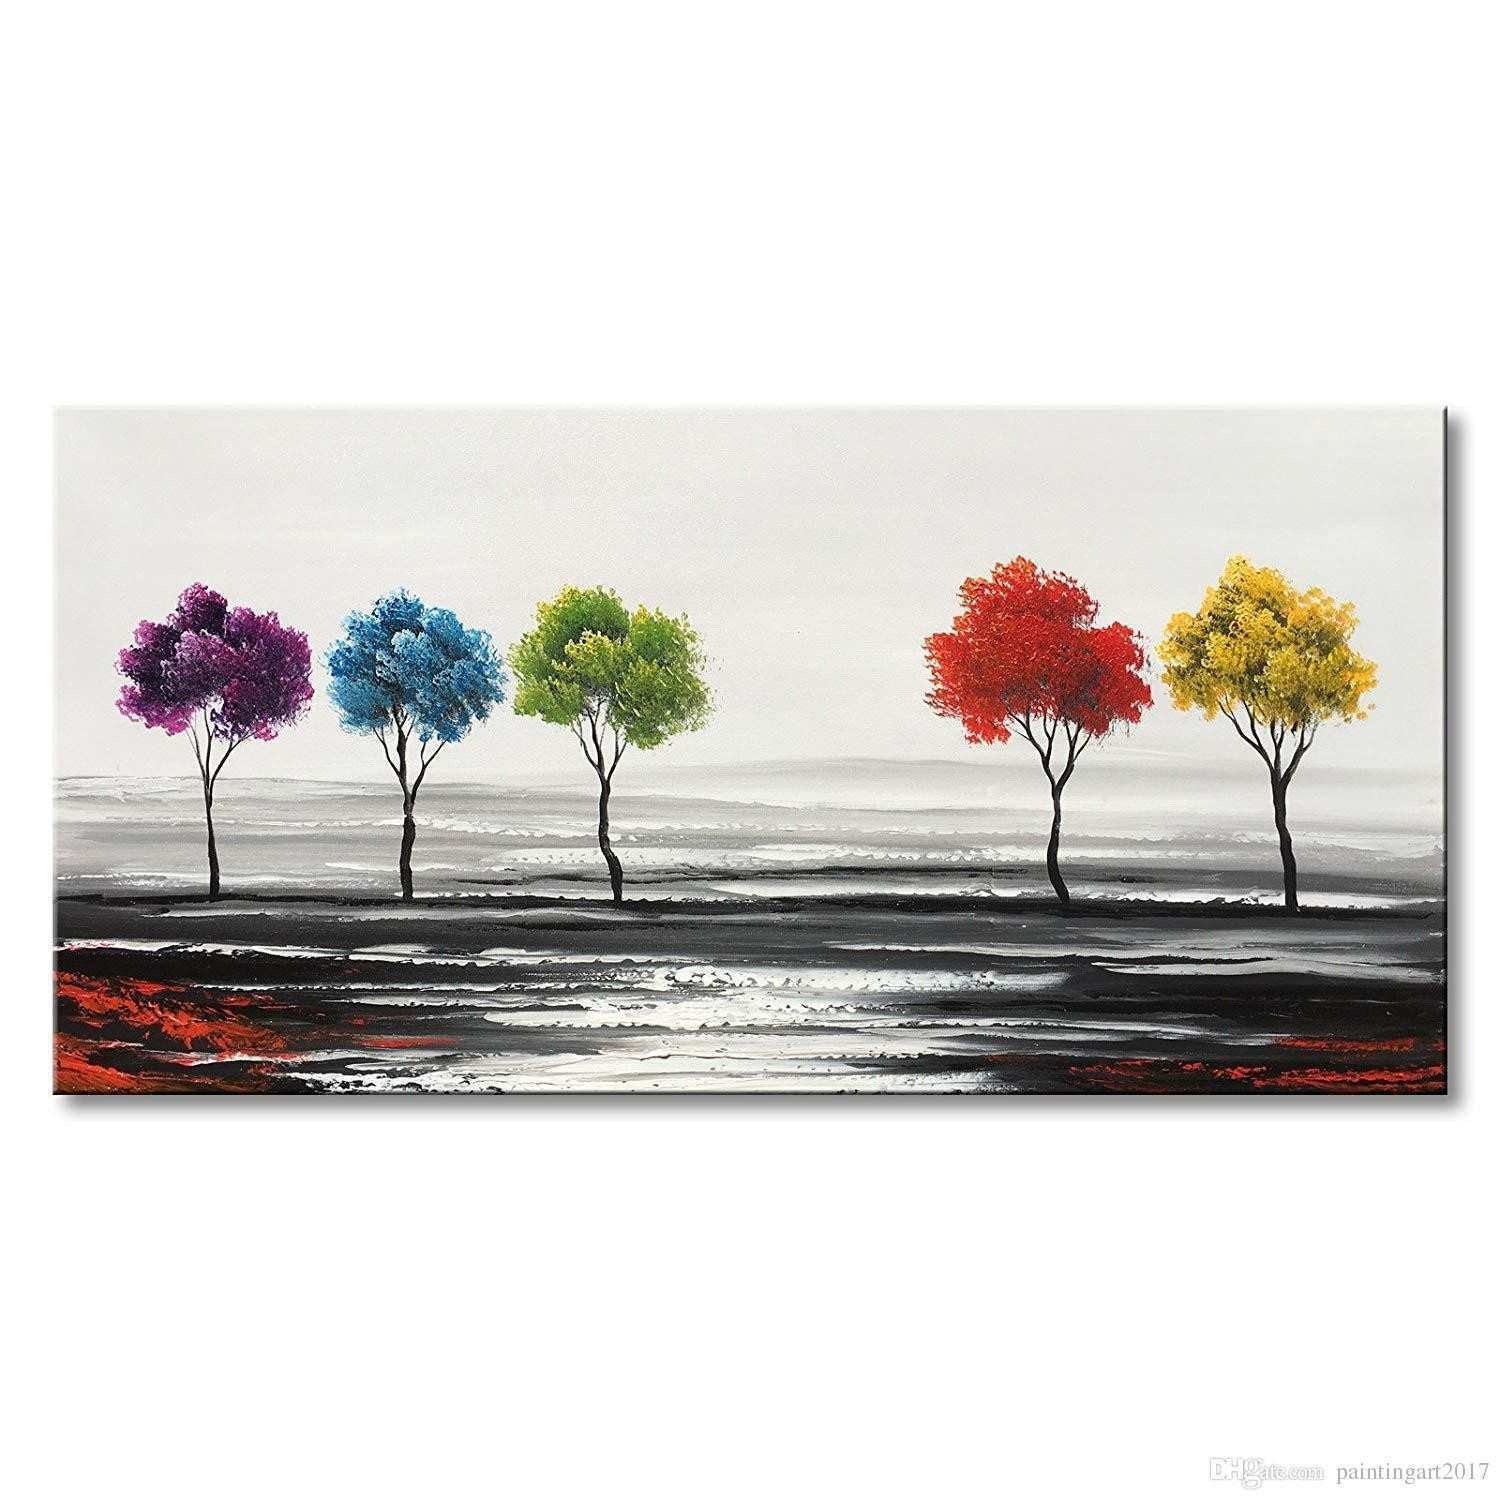 Handmade Colorful Tree Oil Painting on Canvas Hand Painted Modern Abstract Landscape Wall Art Decor Art